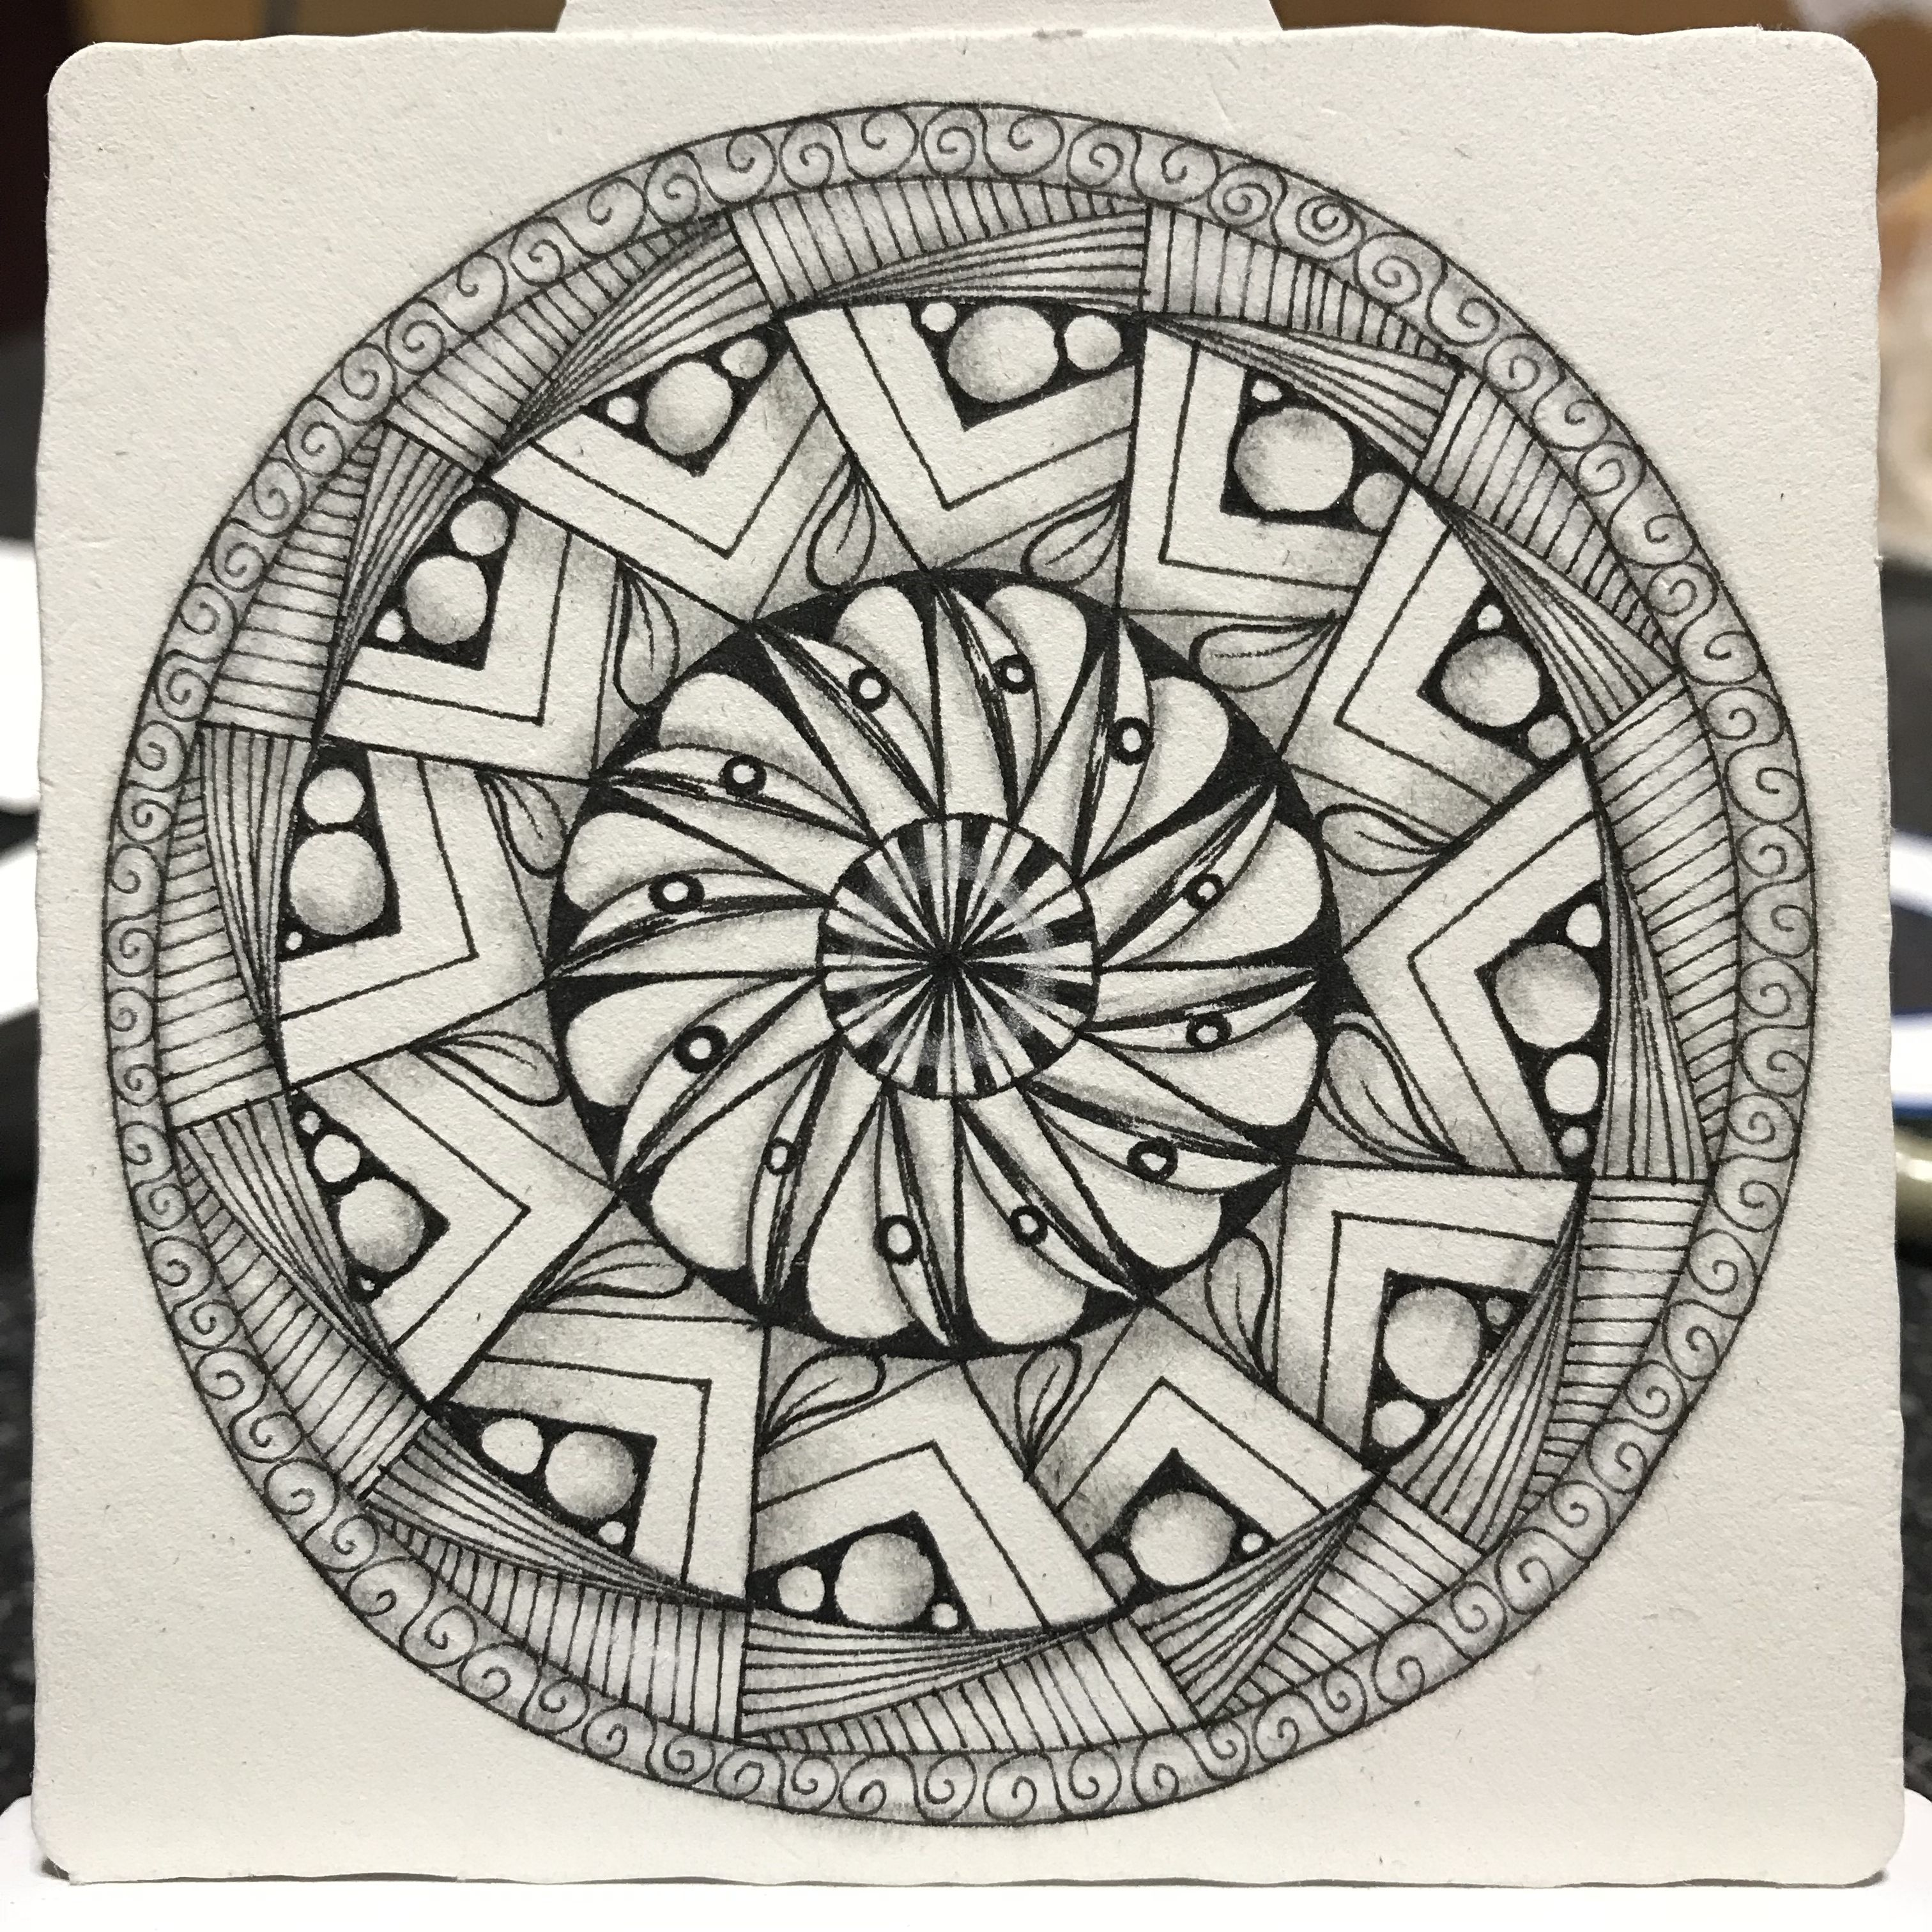 Pin By Melissa Lunn Sykes On DOODLES CIRCLES